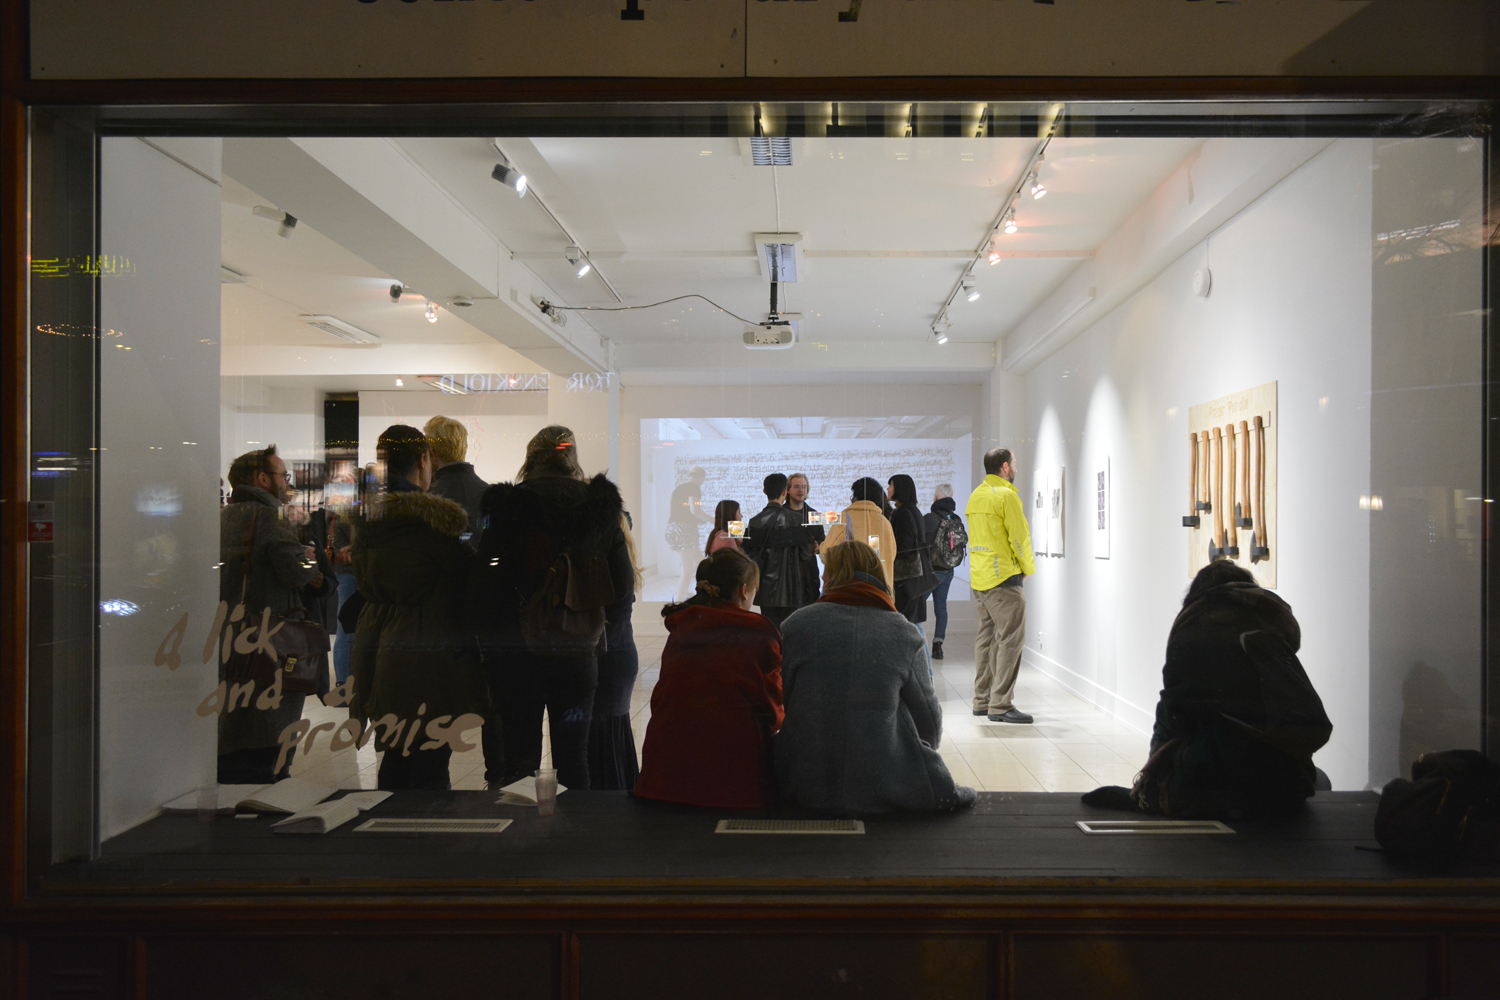 a-lick-and-a-promise-vernissage-10-web.jpg